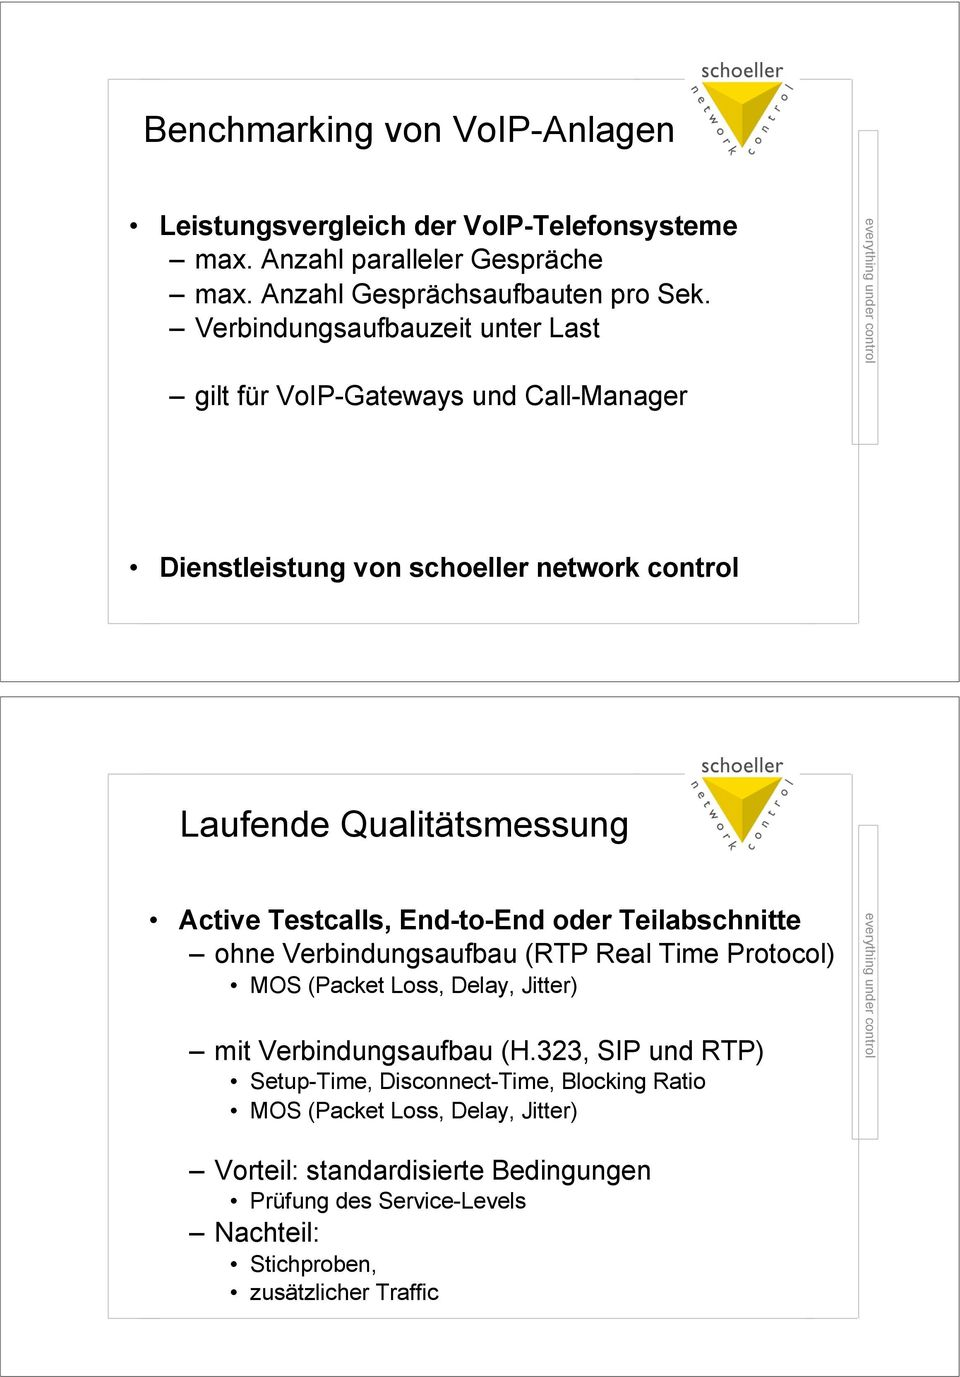 Active Testcalls, End-to-End oder Teilabschnitte! ohne Verbindungsaufbau (RTP Real Time Protocol)! MOS (Packet Loss, Delay, Jitter)! mit Verbindungsaufbau (H.